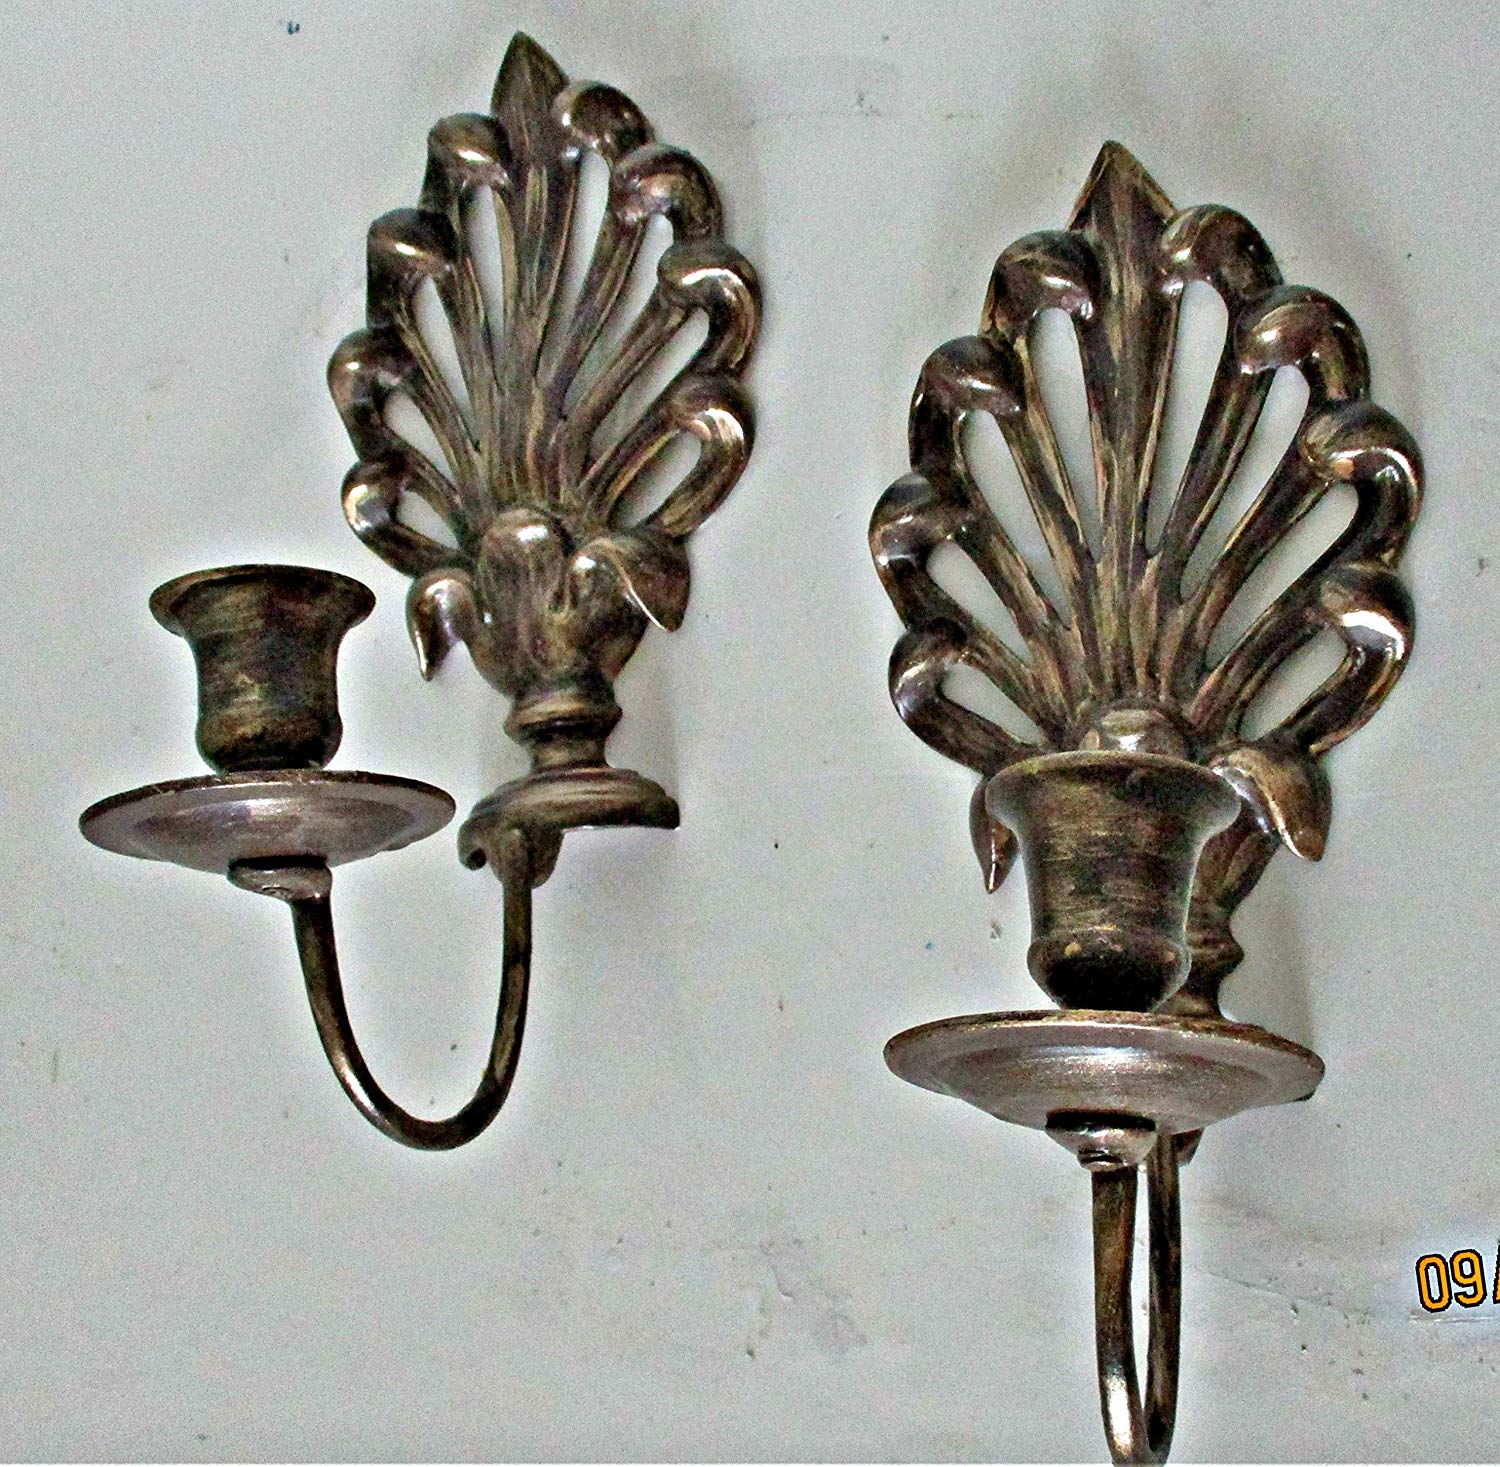 Cheap Gold Wall Candle Sconces Find Gold Wall Candle Sconces Deals On Line At Alibaba Com